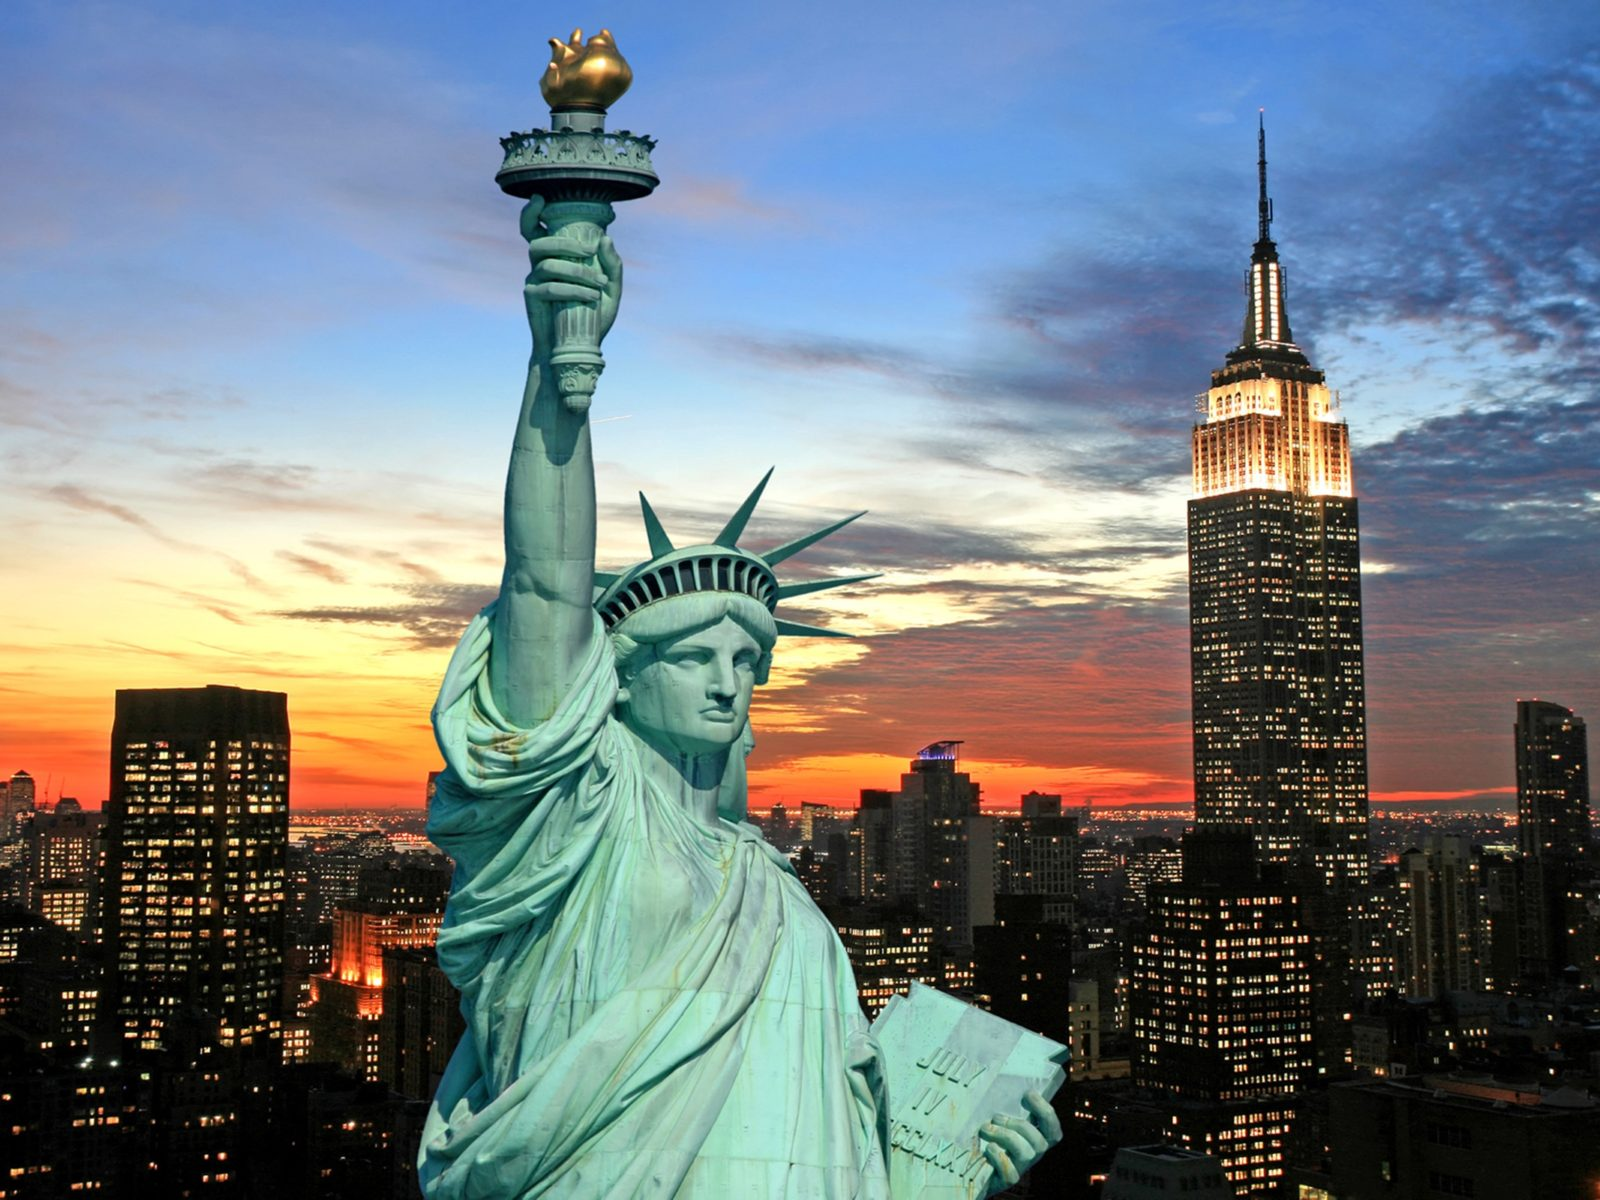 Nyc Iphone Wallpaper New York City Statue Of Liberty Fotolia 56815